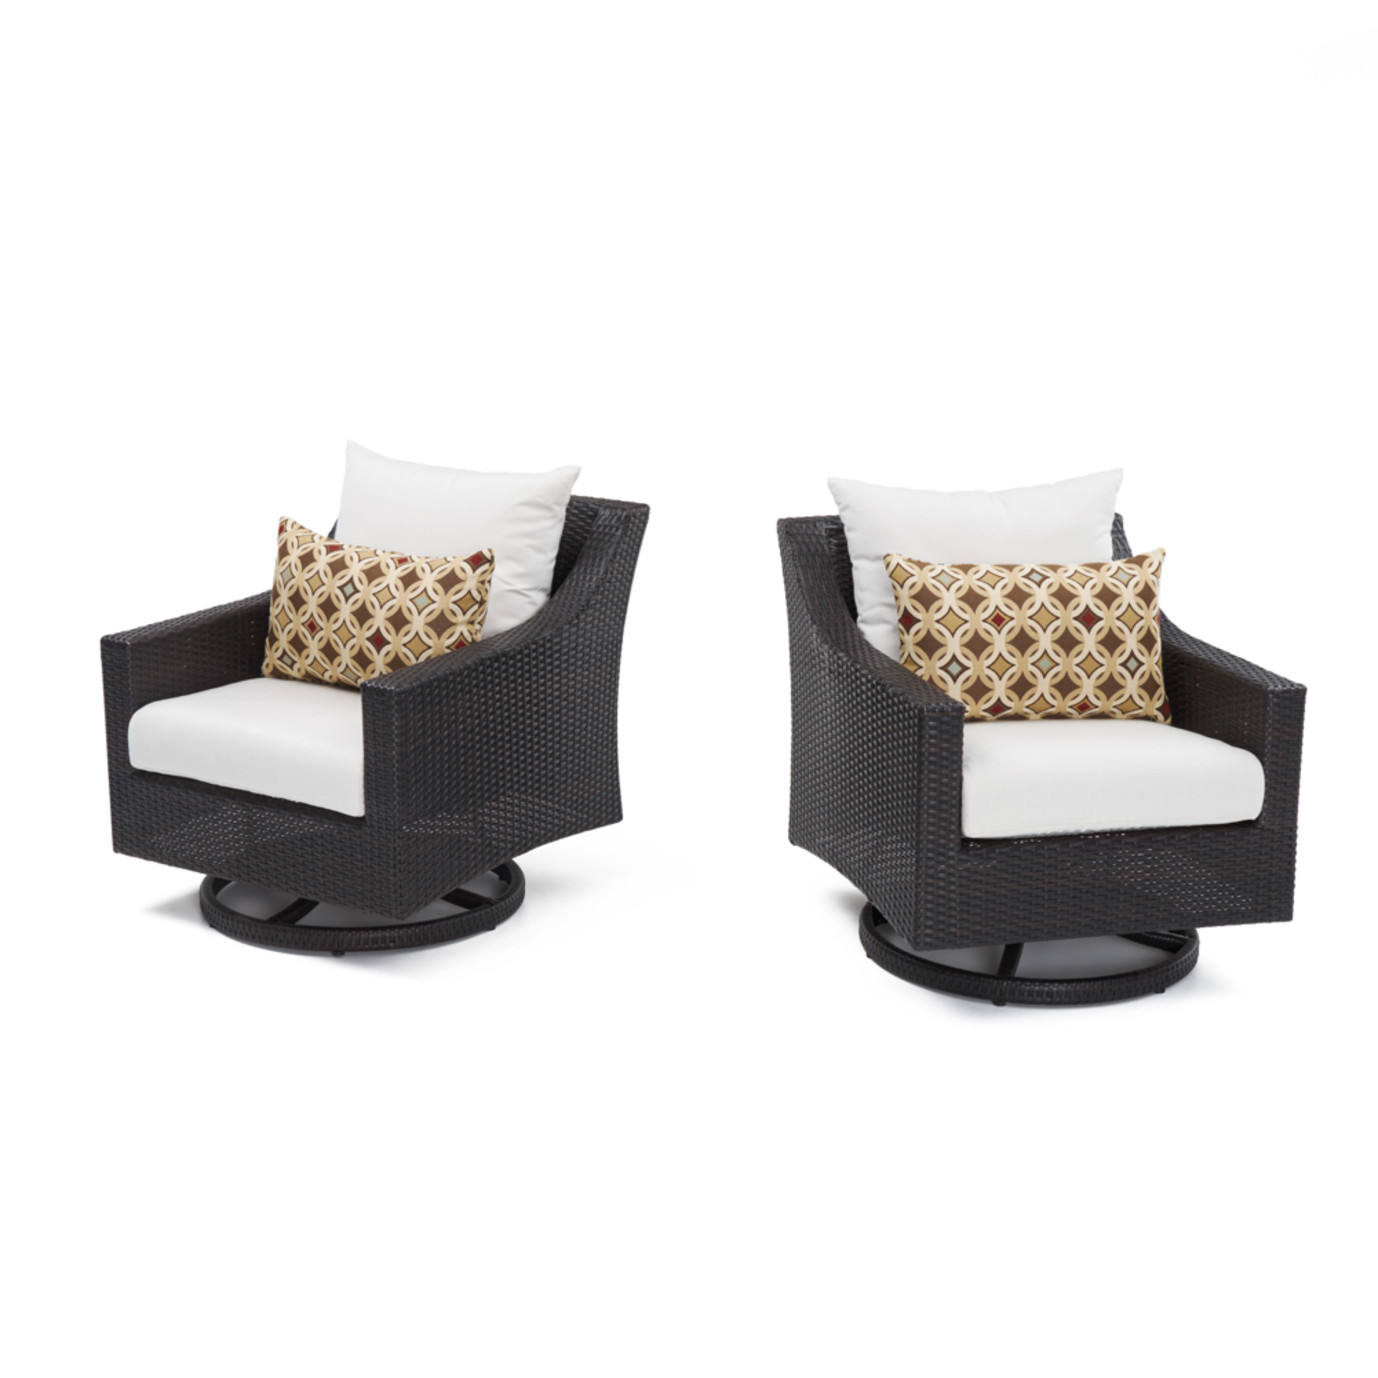 Deco™ Motion Club Chairs - Moroccan Cream